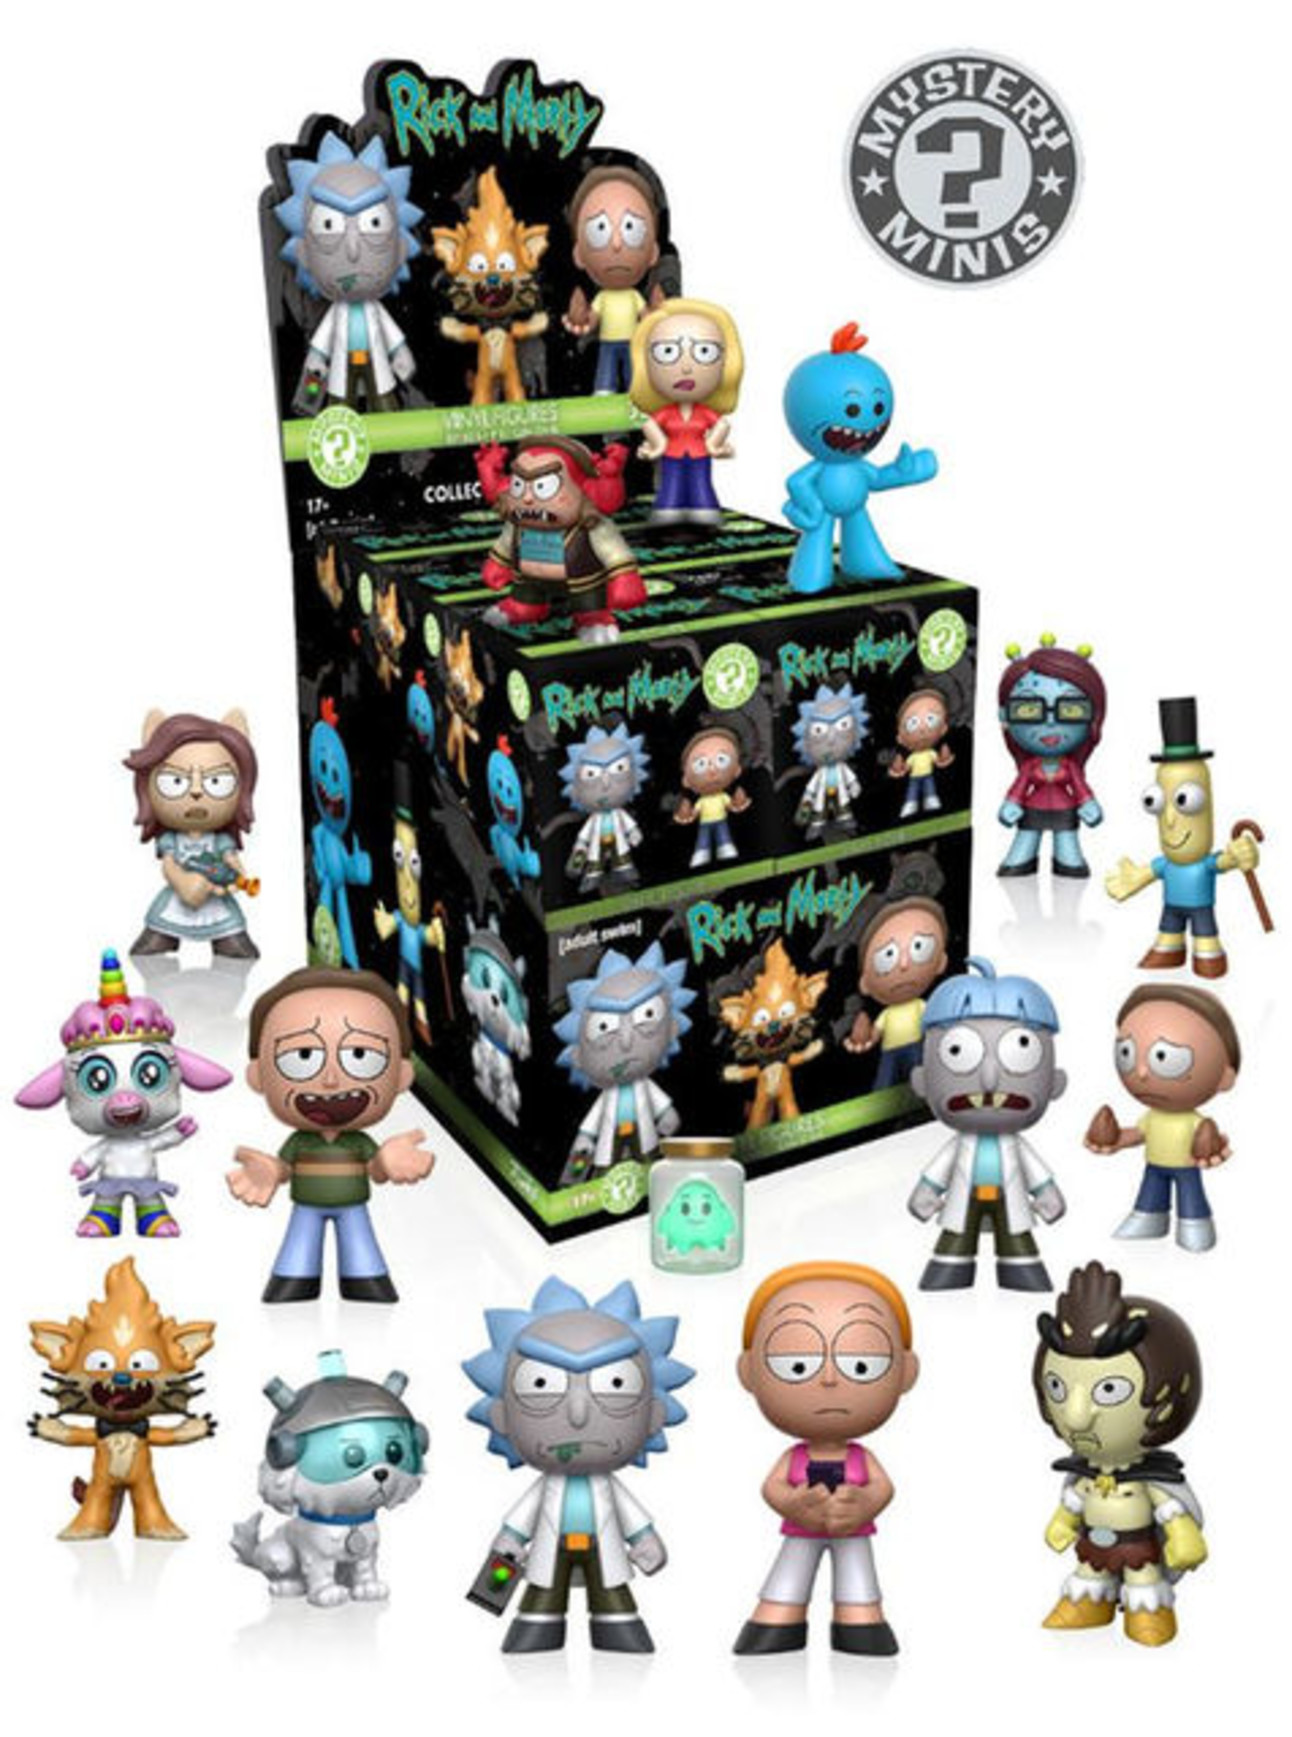 funko-mystery-minis_-rick-morty-series-1-2.5-inch-vinyl-figure-blind-packs-cd09a0a5.zoom_.jpg